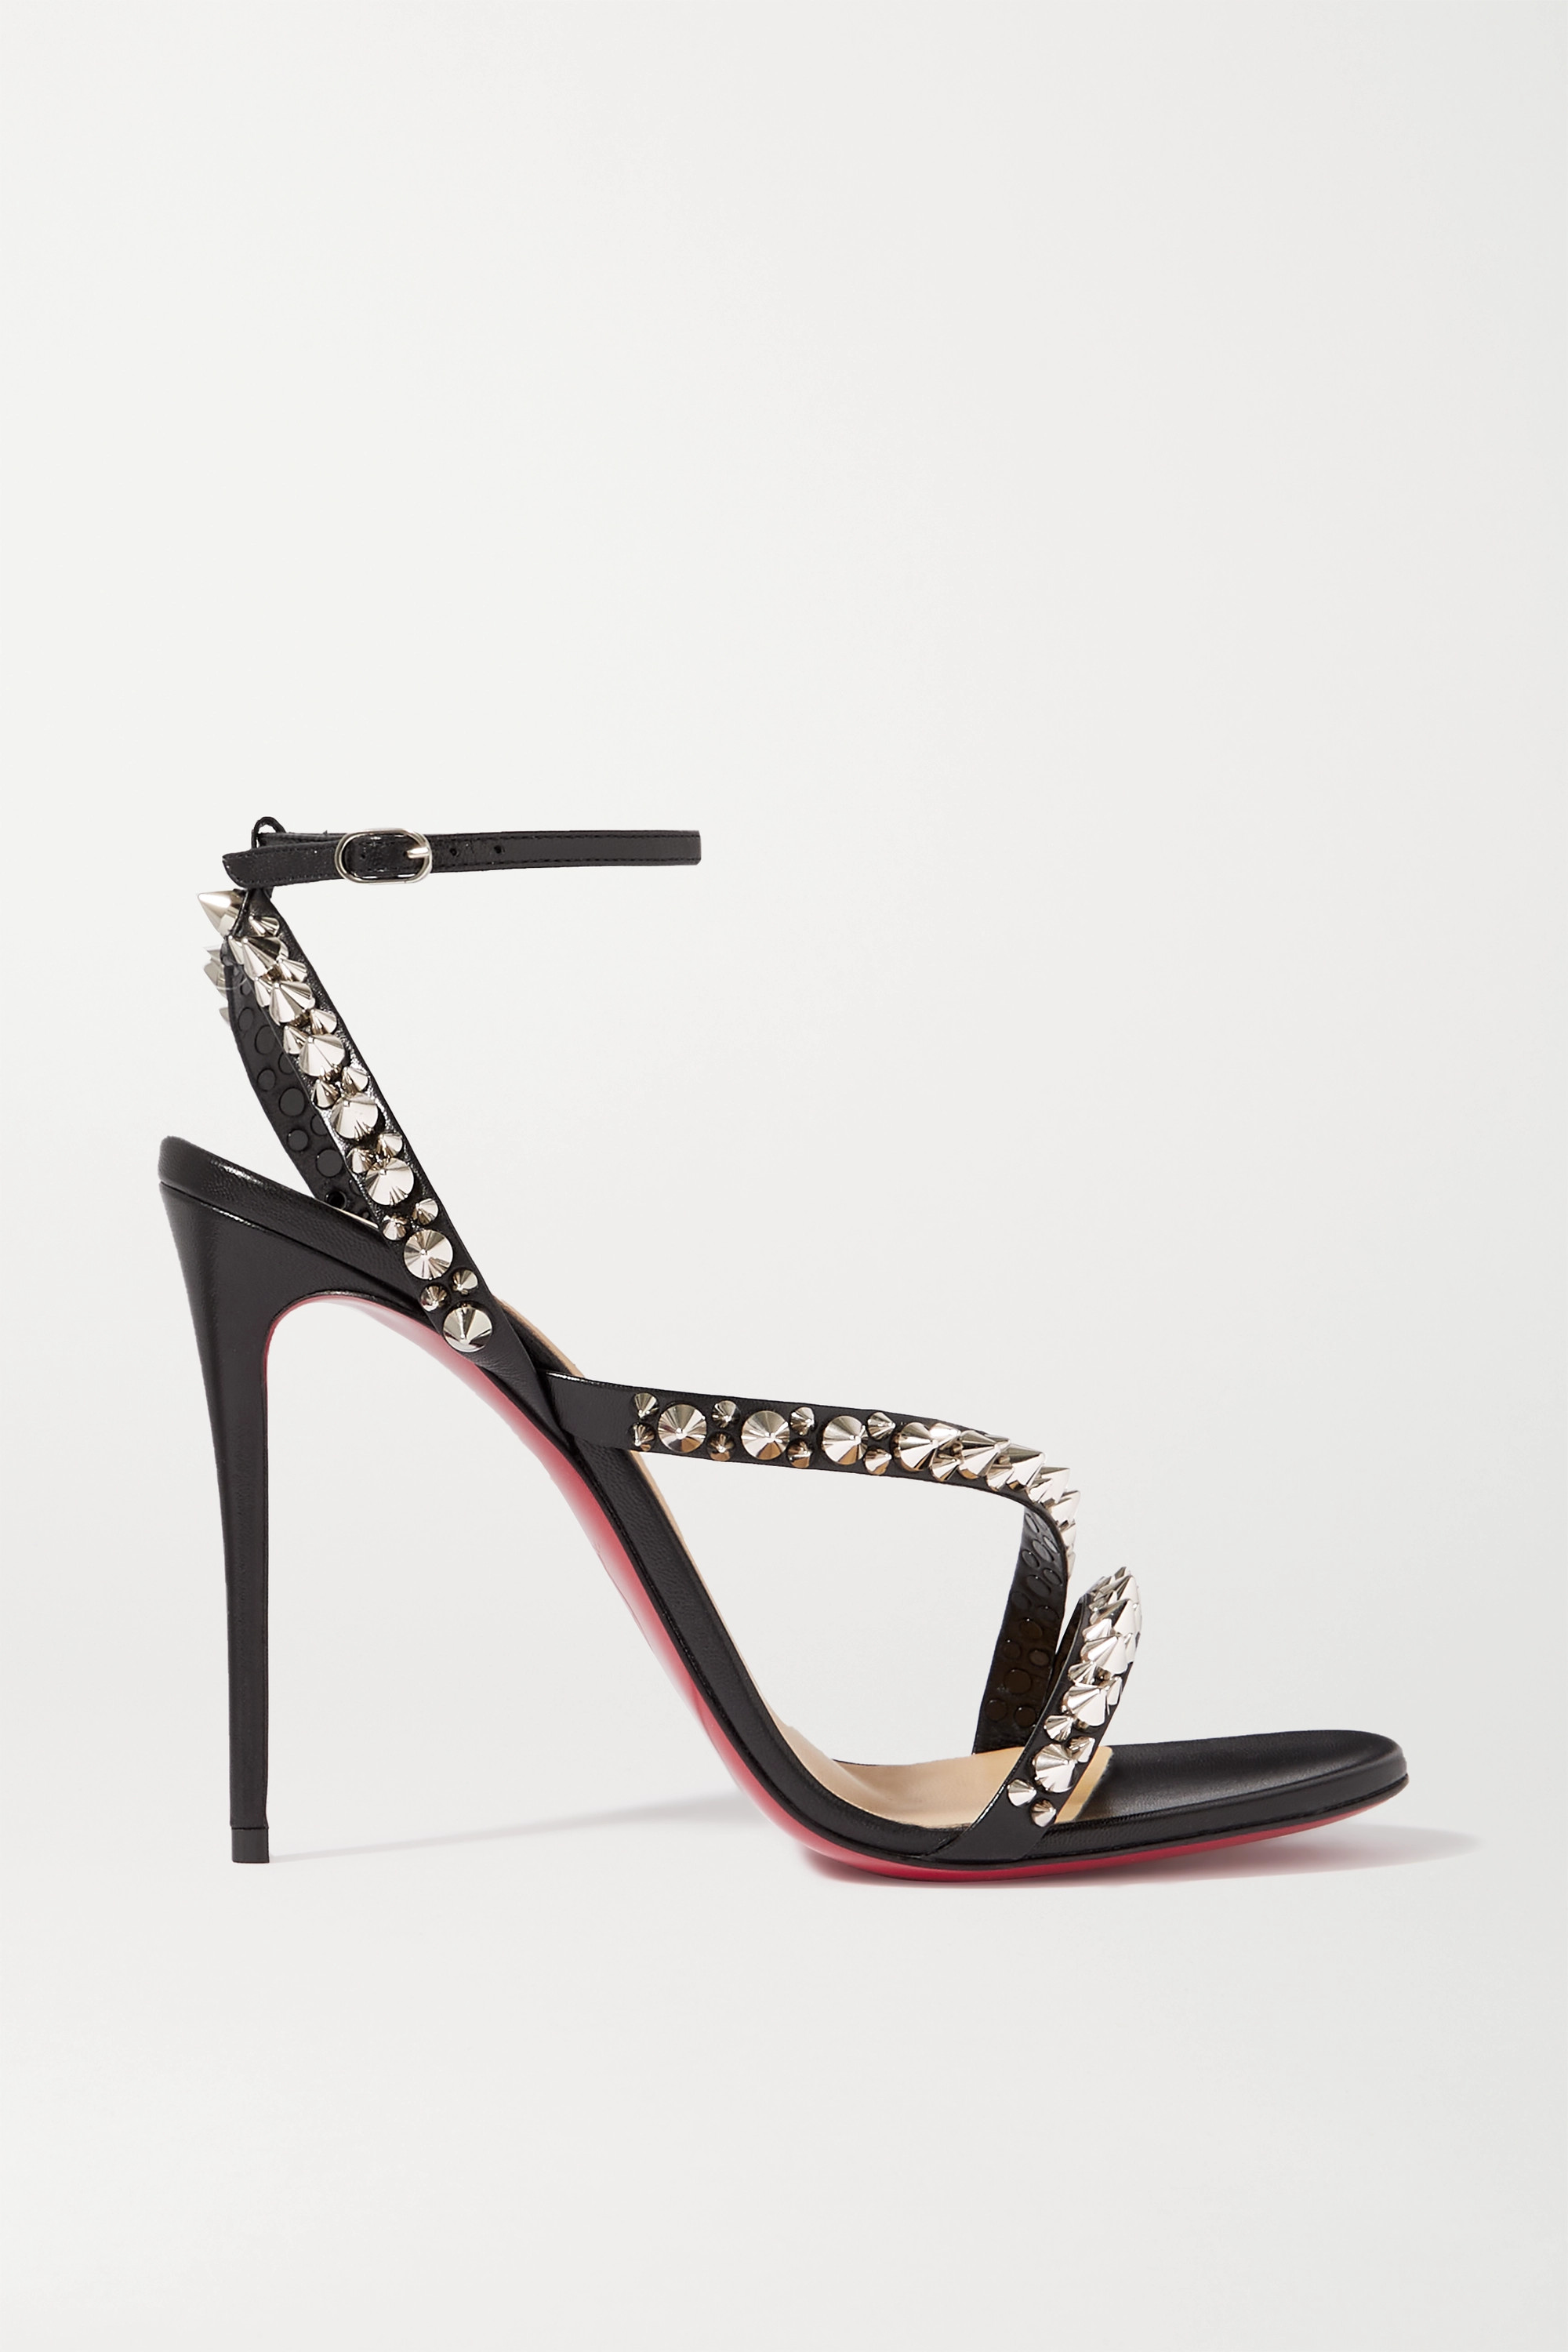 Christian Louboutin Mafaldina Spikes 100 leather sandals